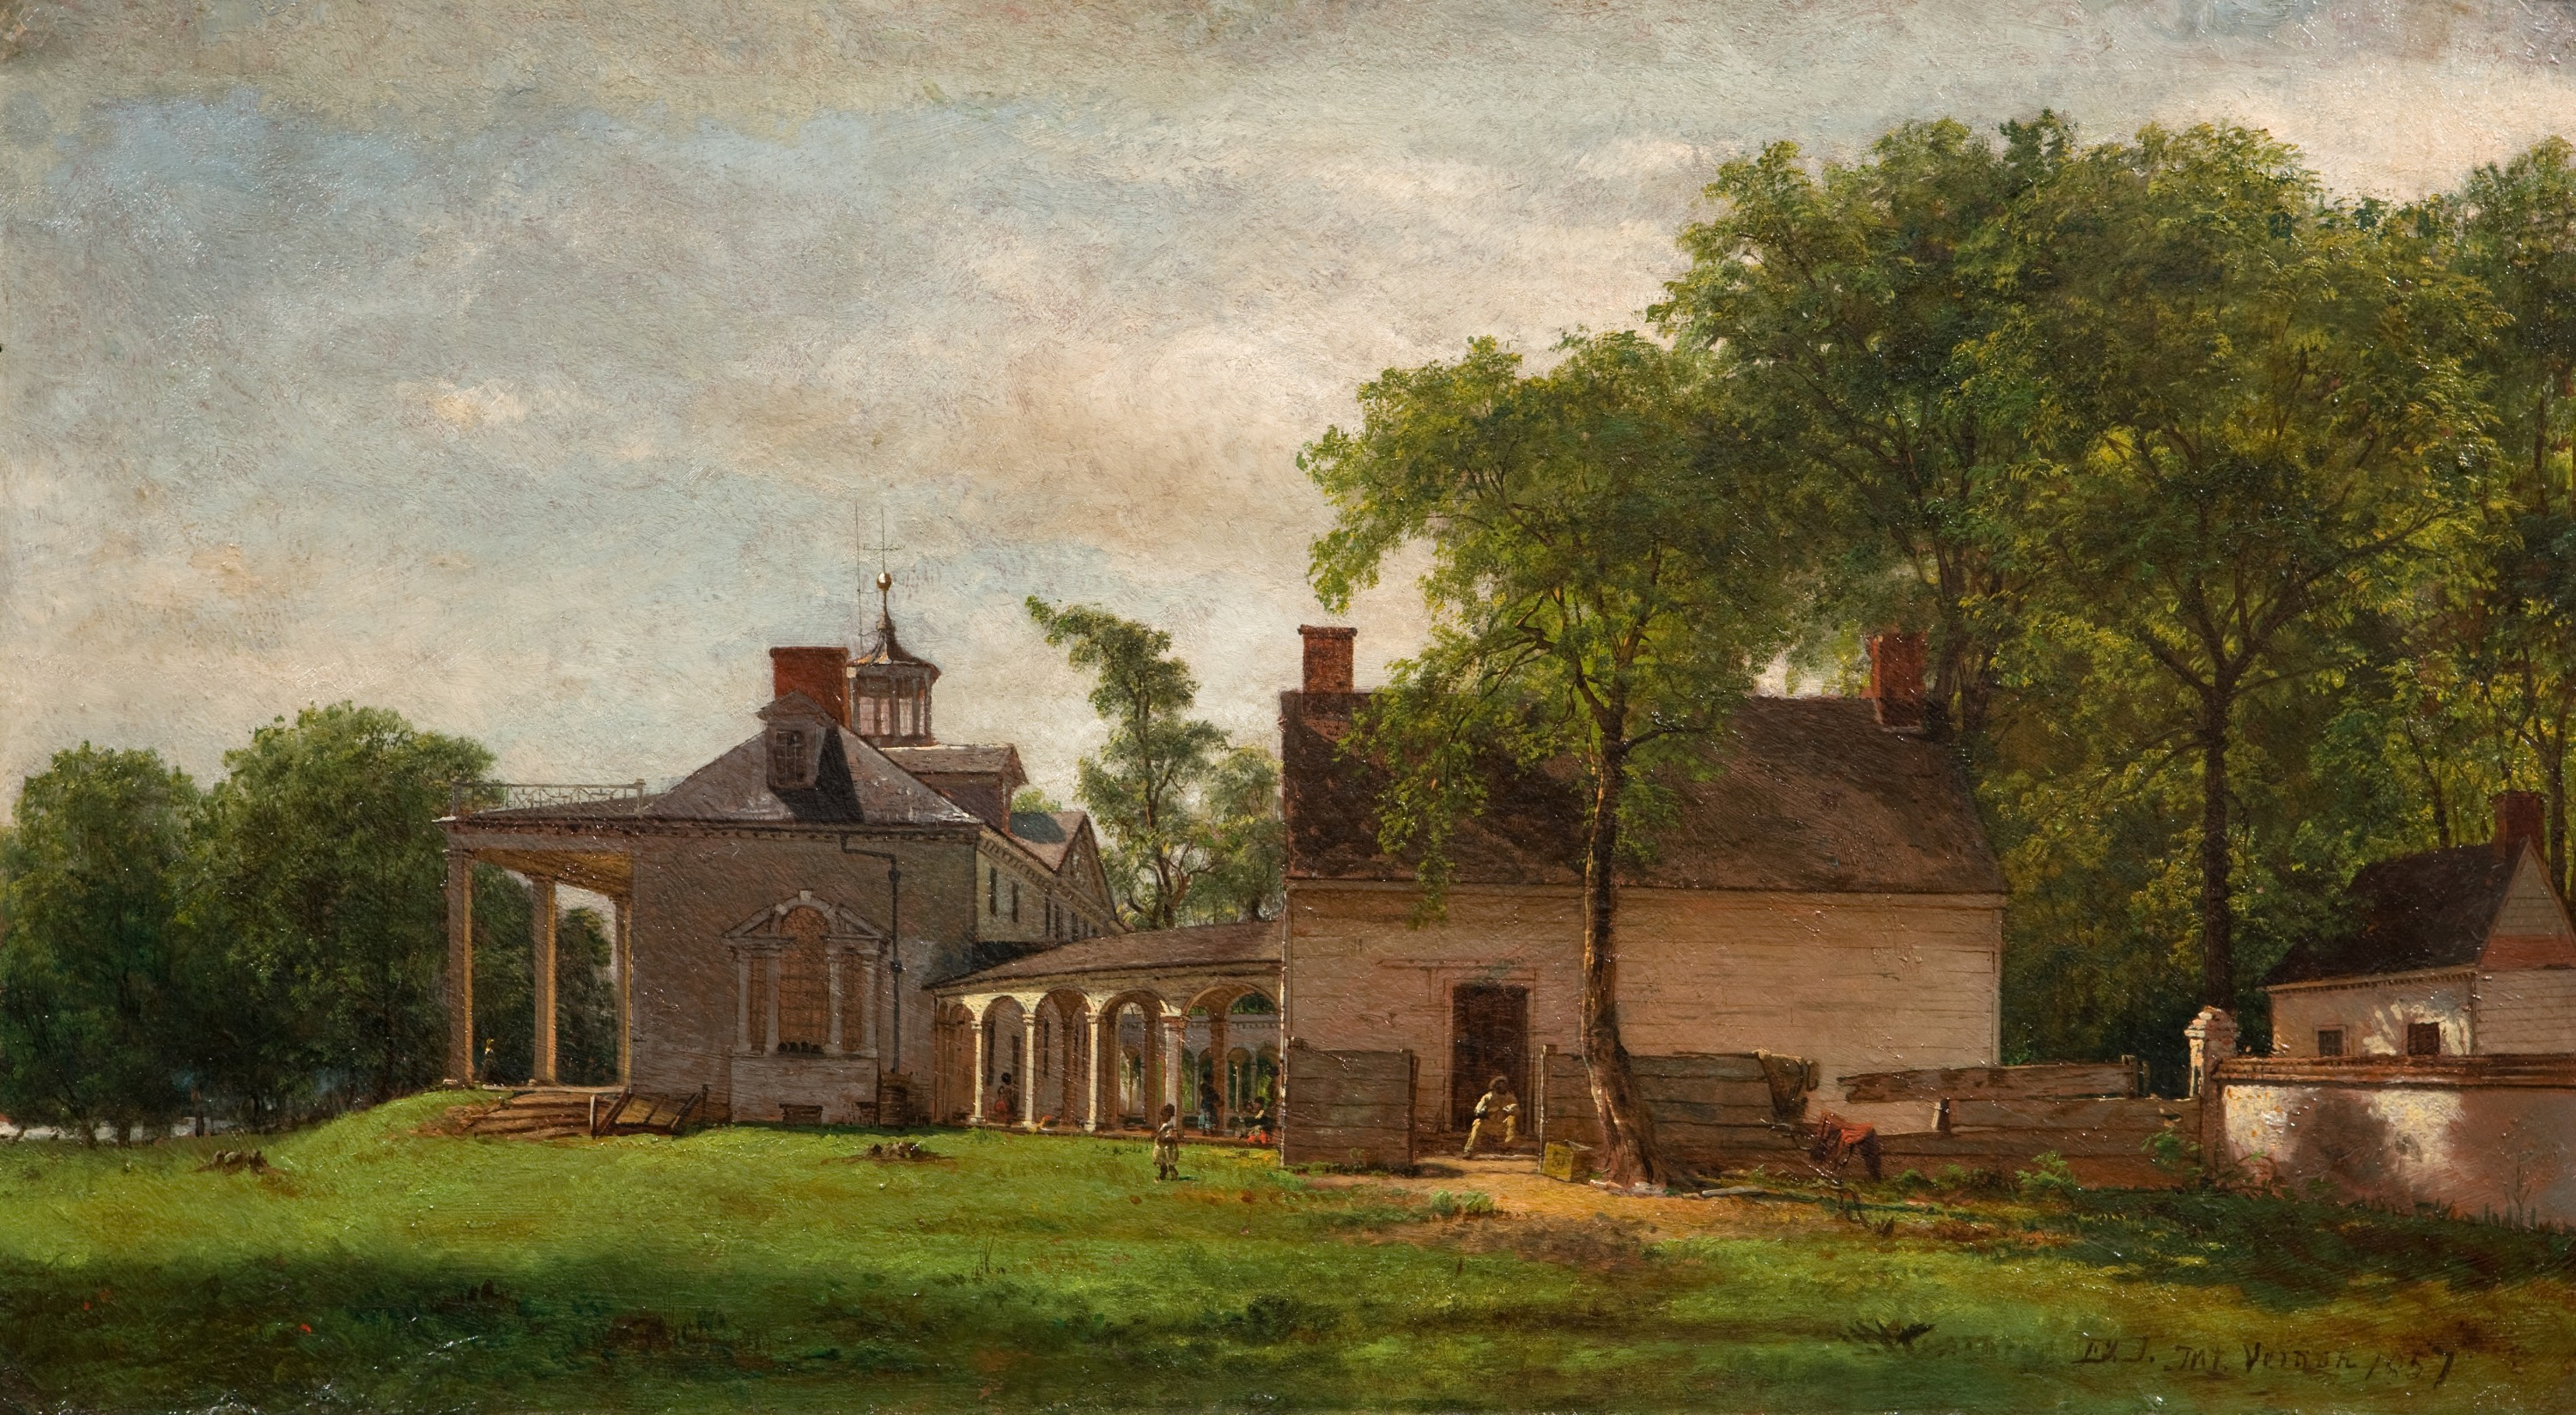 Eastman Johnson, The Old Mount Vernon, 1857, oil on board, M-4863, Mount Vernon Ladies' Association, Purchased with funds courtesy of an anonymous donor and the Mount Vernon Licensing Fund, 2009